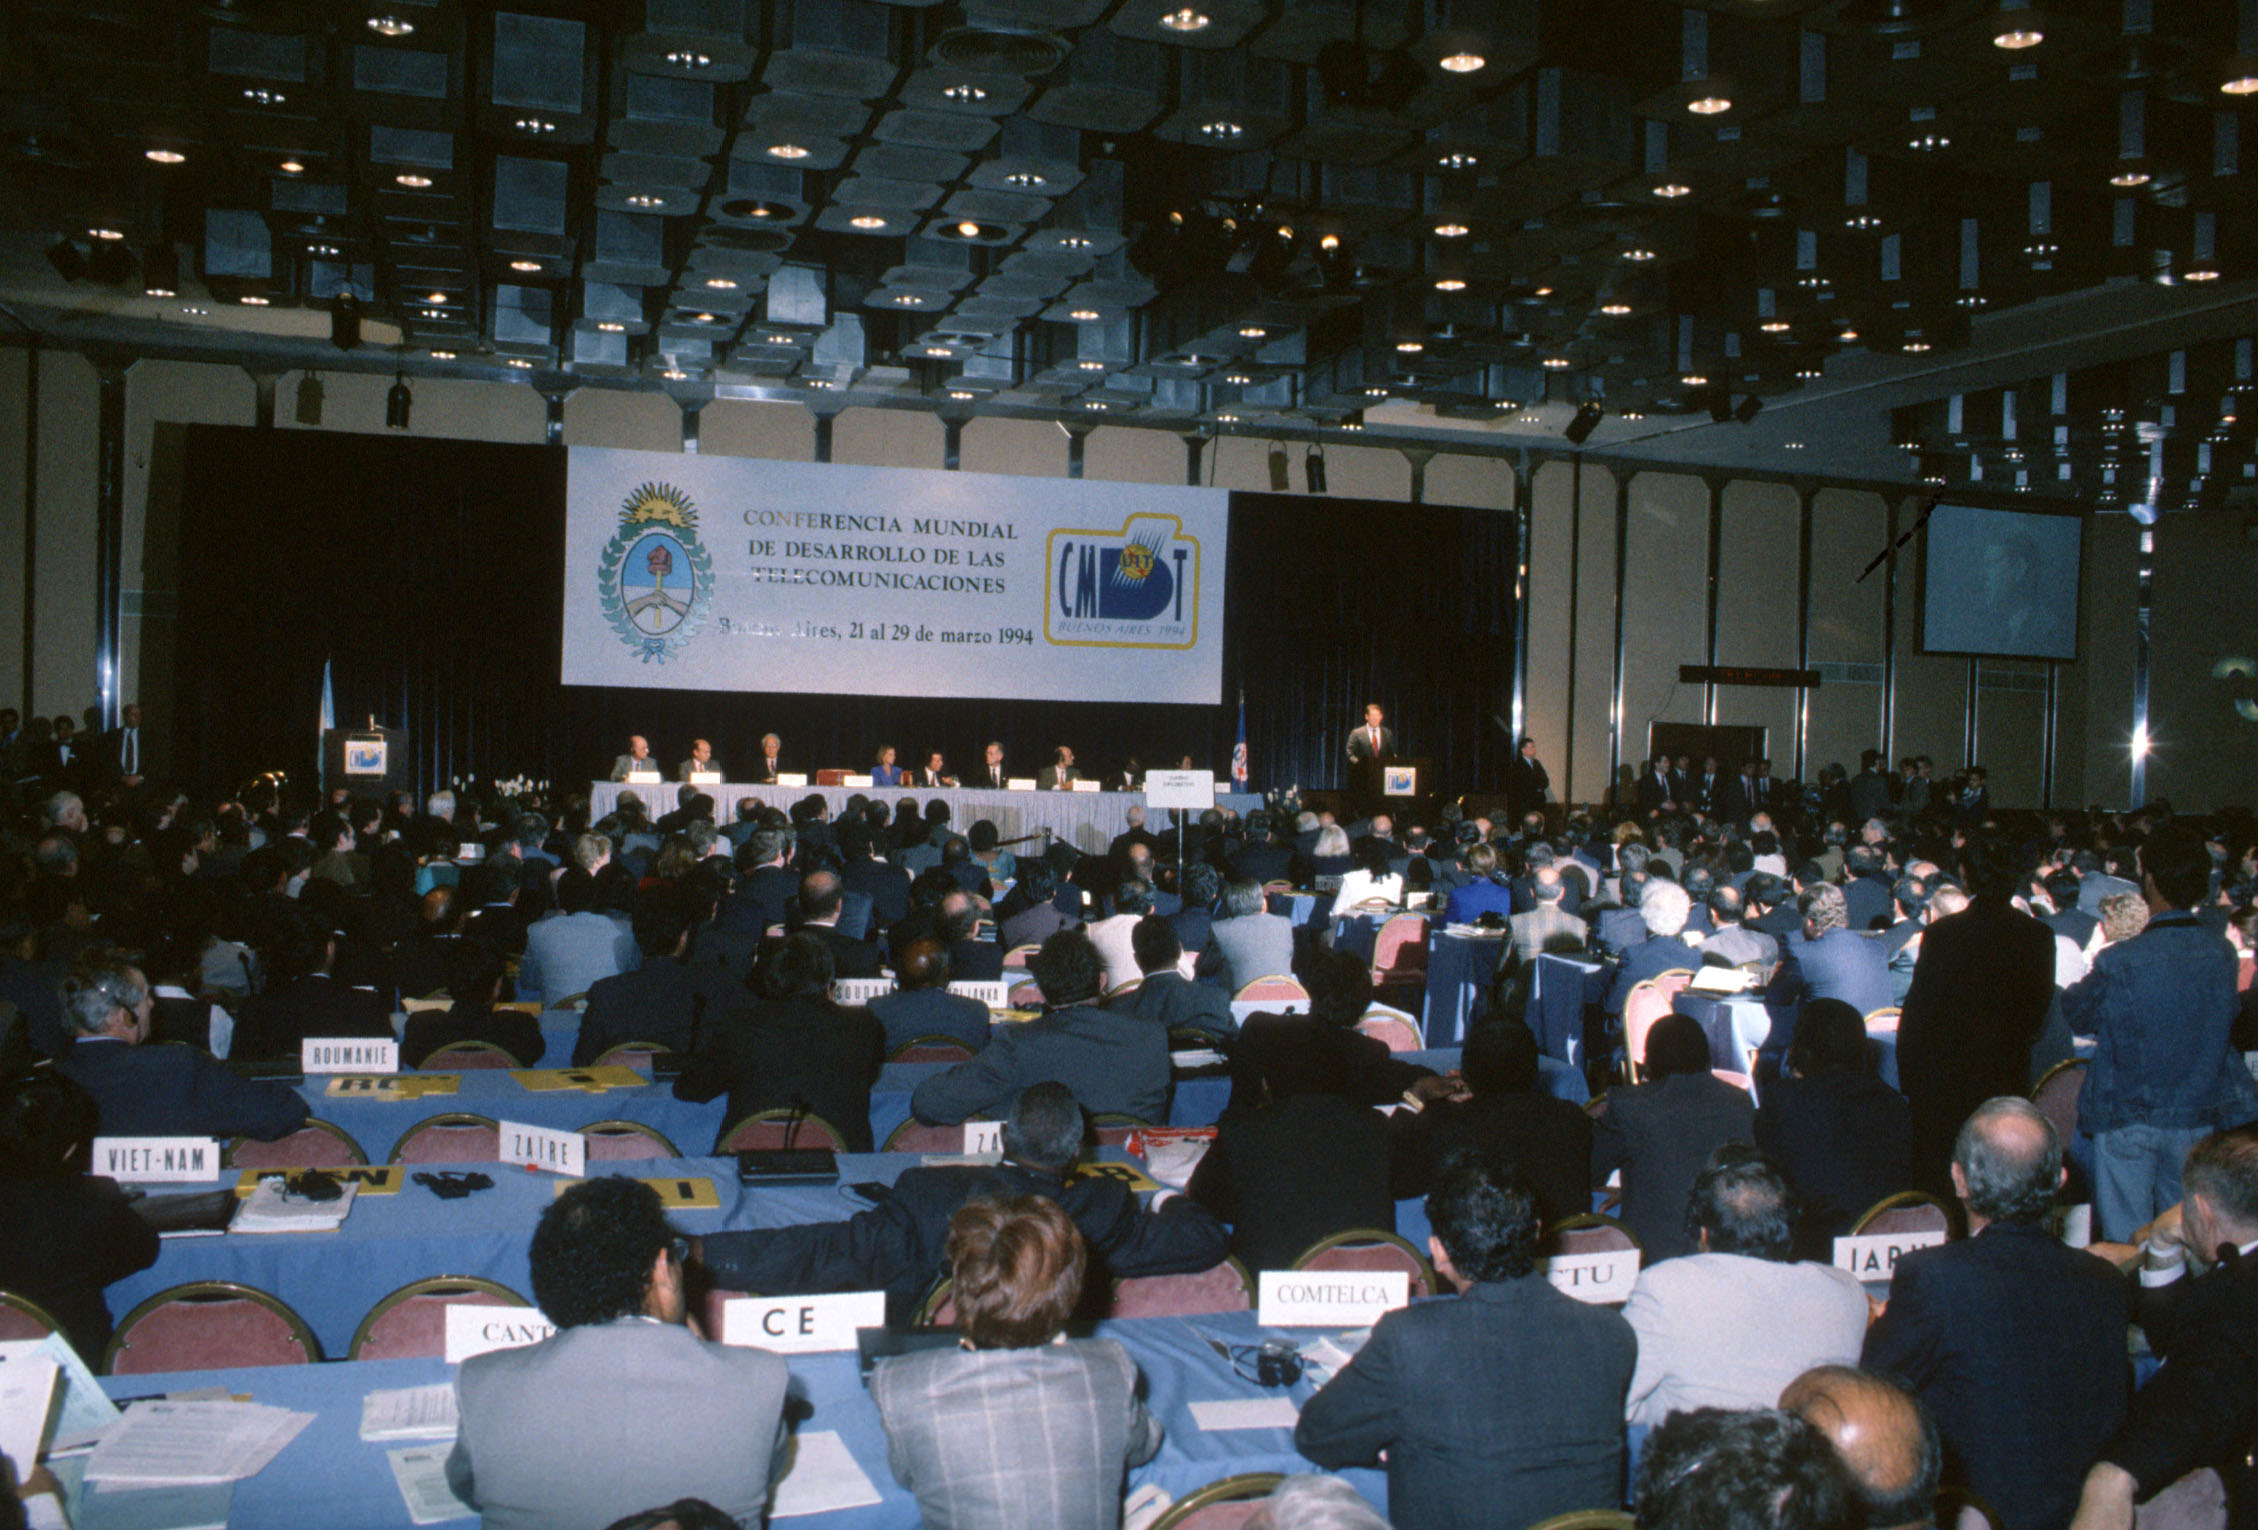 World Telecommunication Development Conference (Buenos Aires, 1994)